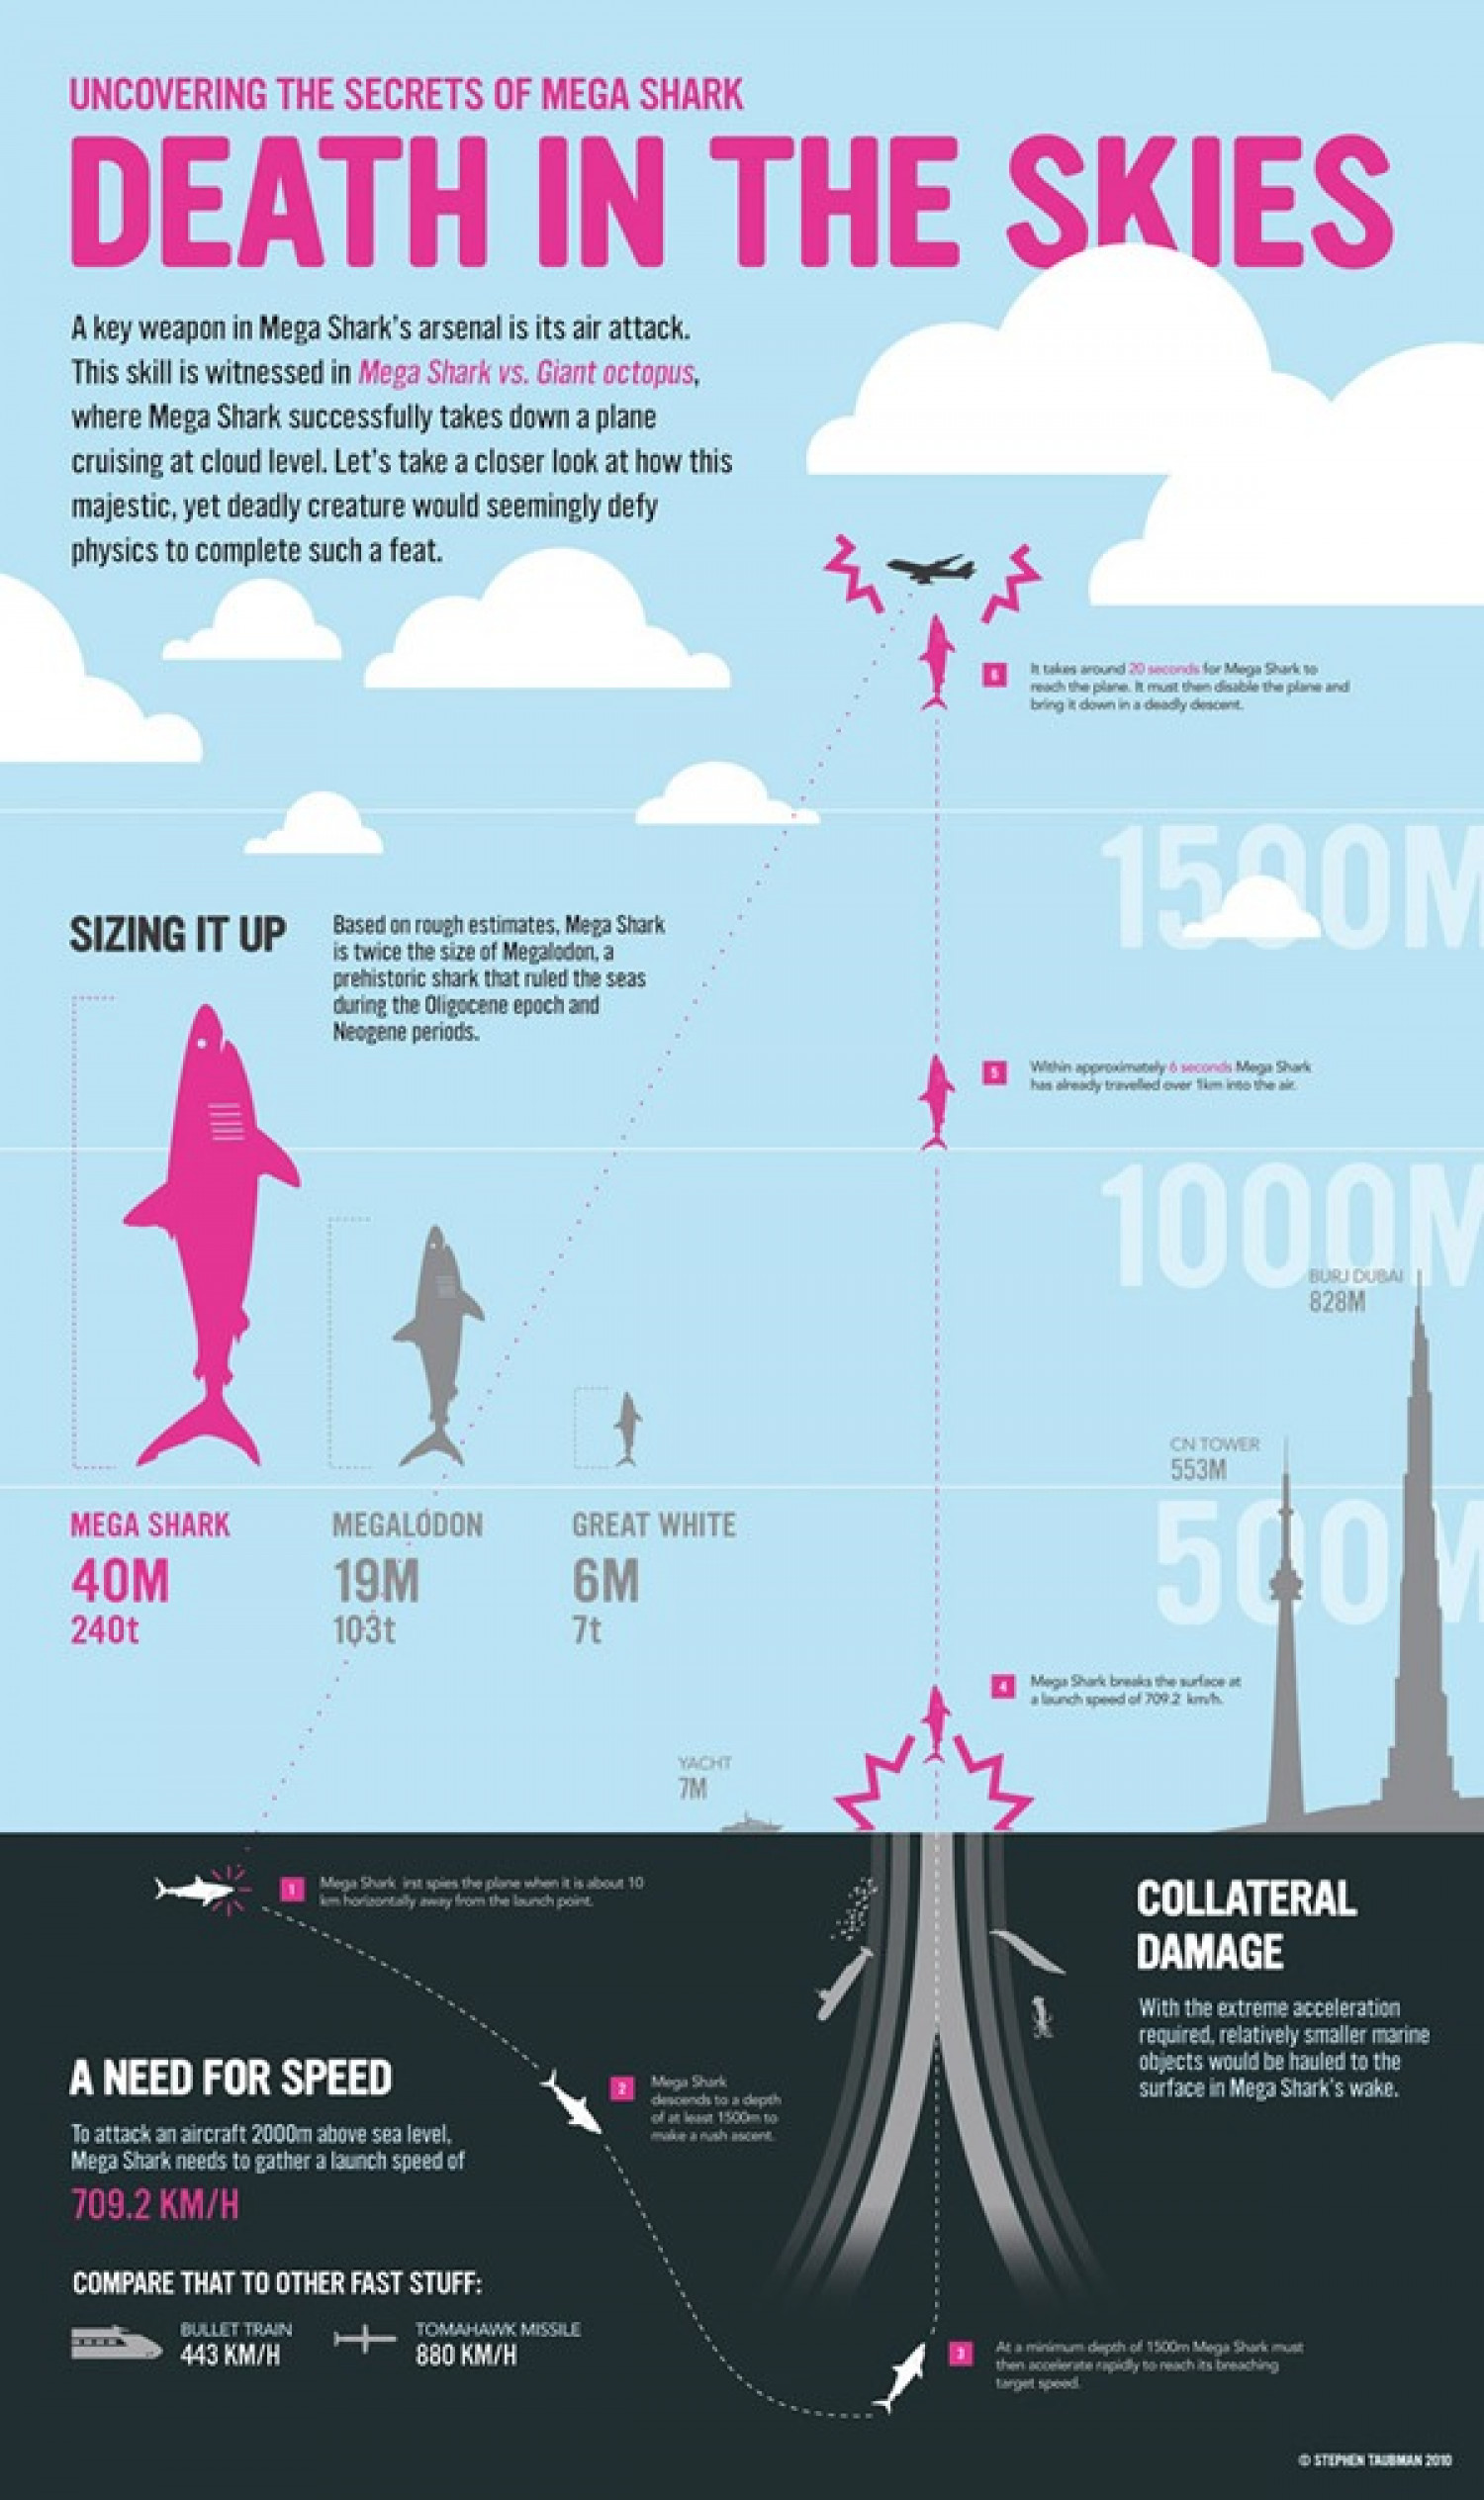 Uncovering the Secrets of Megashark  Infographic